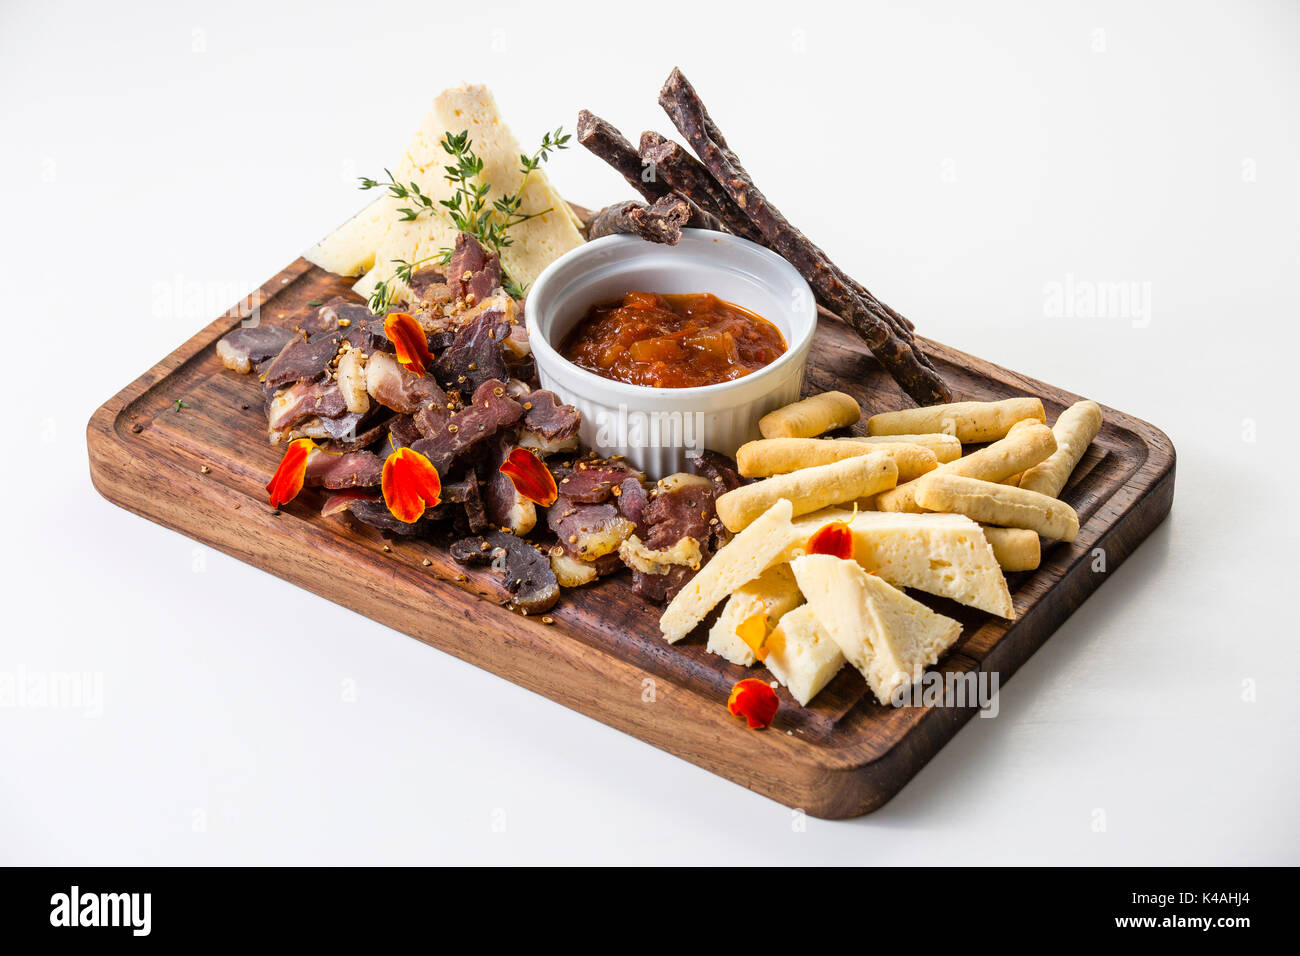 Namibian plate with biltong, dry sausage, fresh farm cheese, grissini and tomato chutney - Stock Image